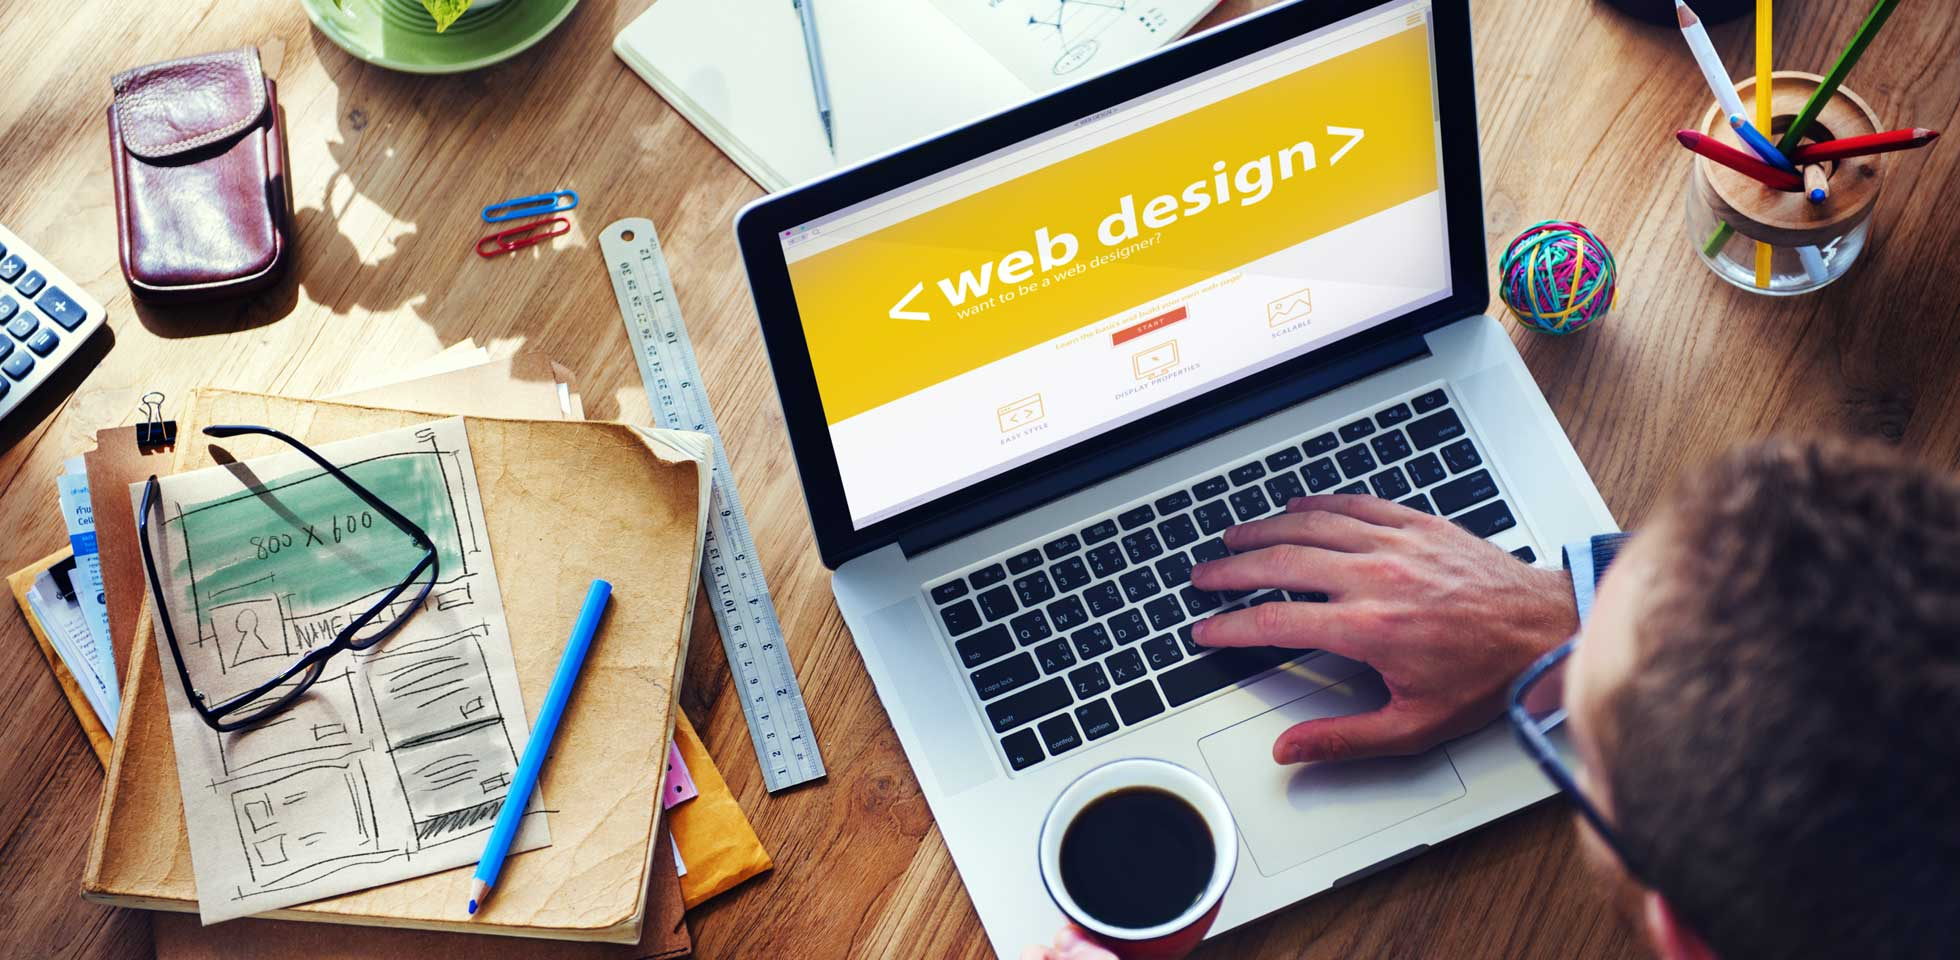 All that is needed to be a great website designer